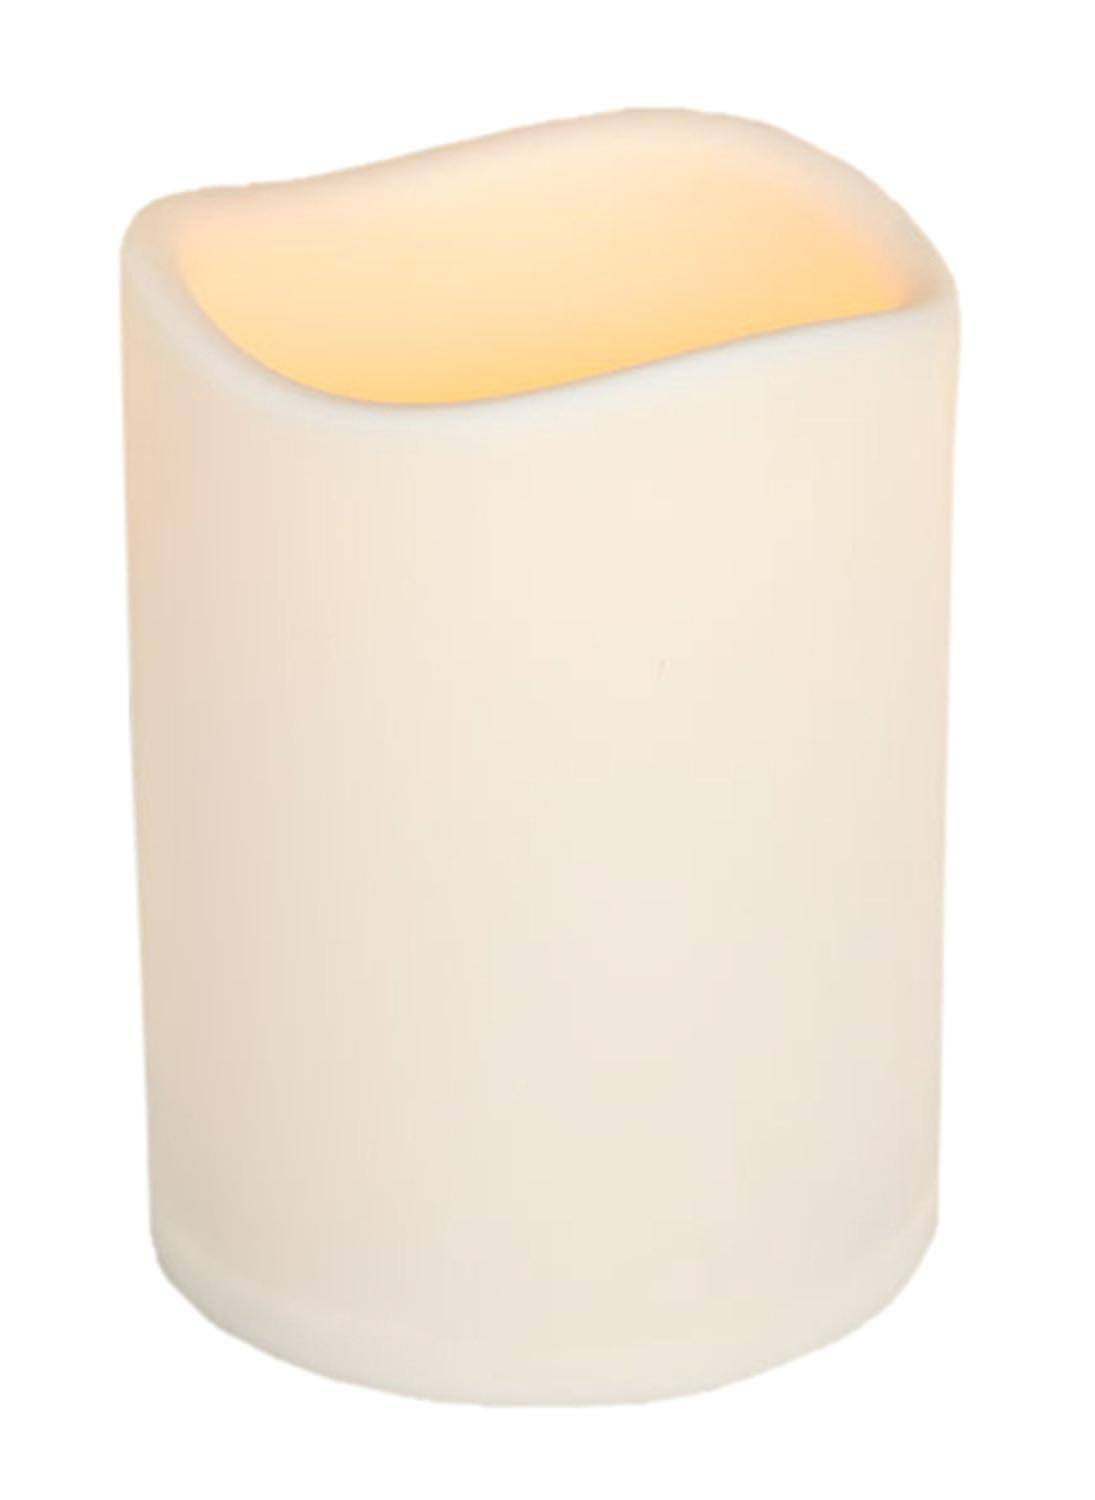 "Everlasting Glow Led Indoor & Outdoor Candle - Timer, Bisque, 4.625""x6"""